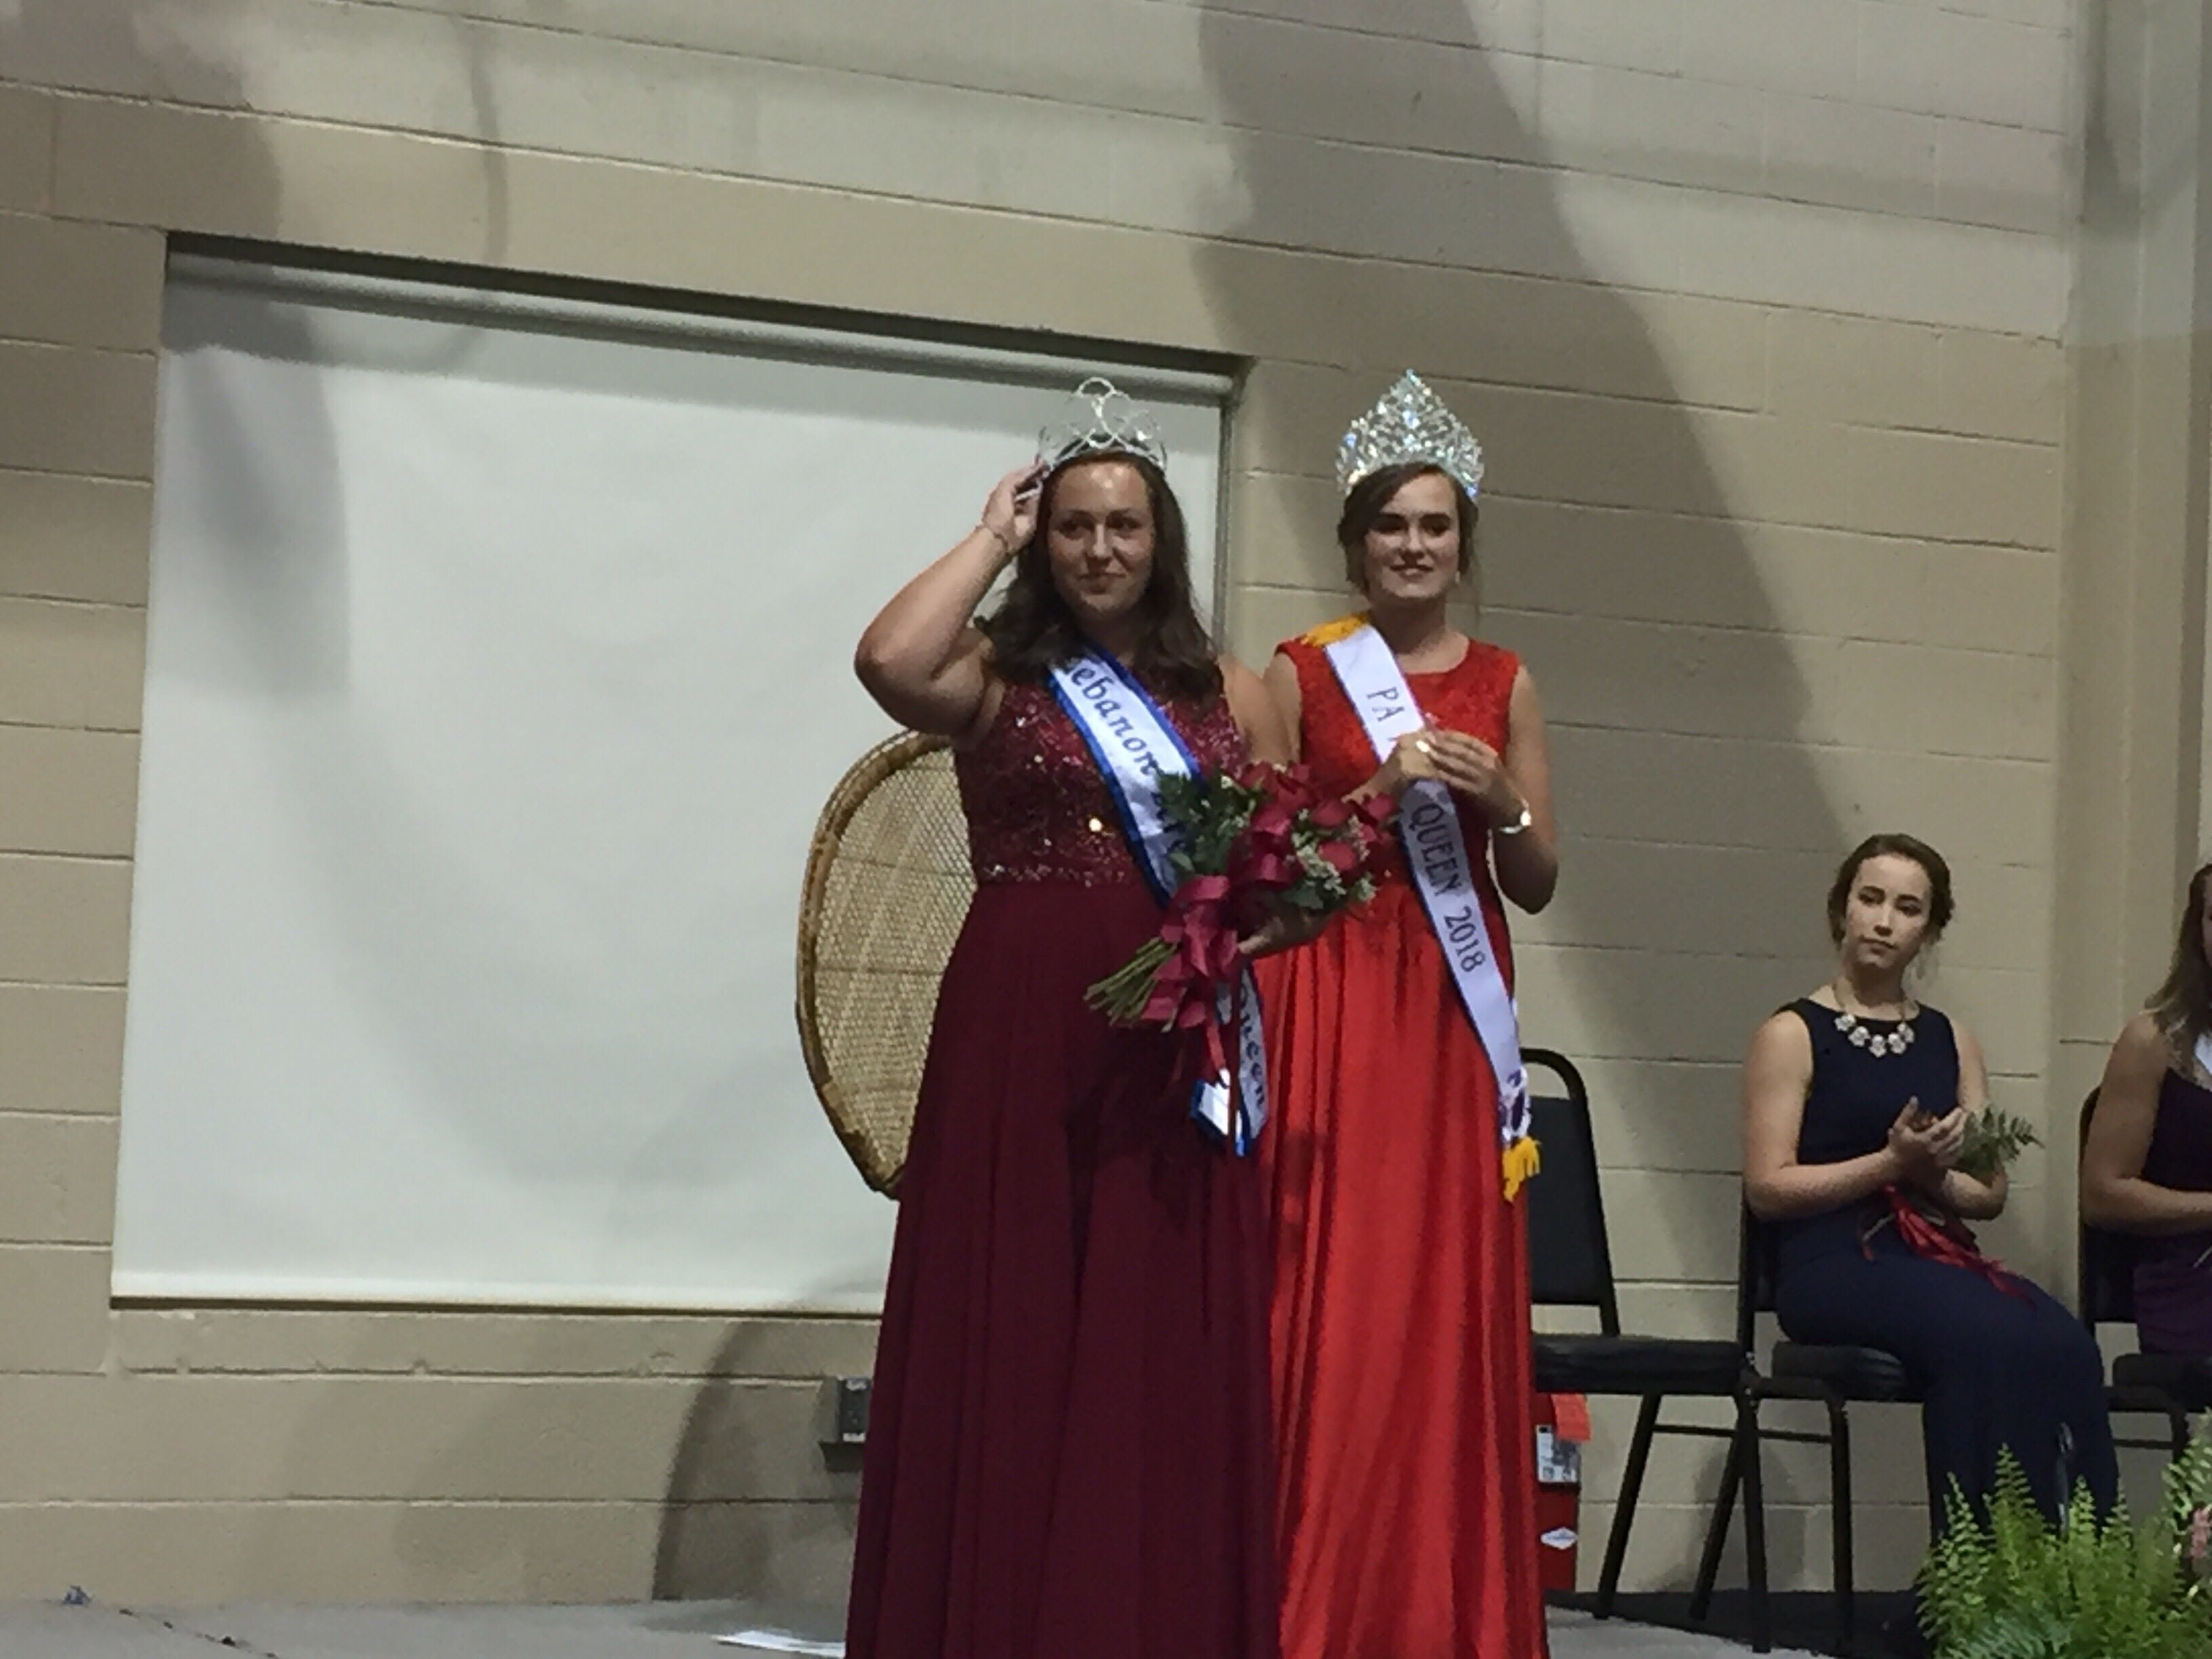 2018 Lebanon Fair Queen Madison Hetrick (left) after being crowned by 2017 winner Liz Voight.